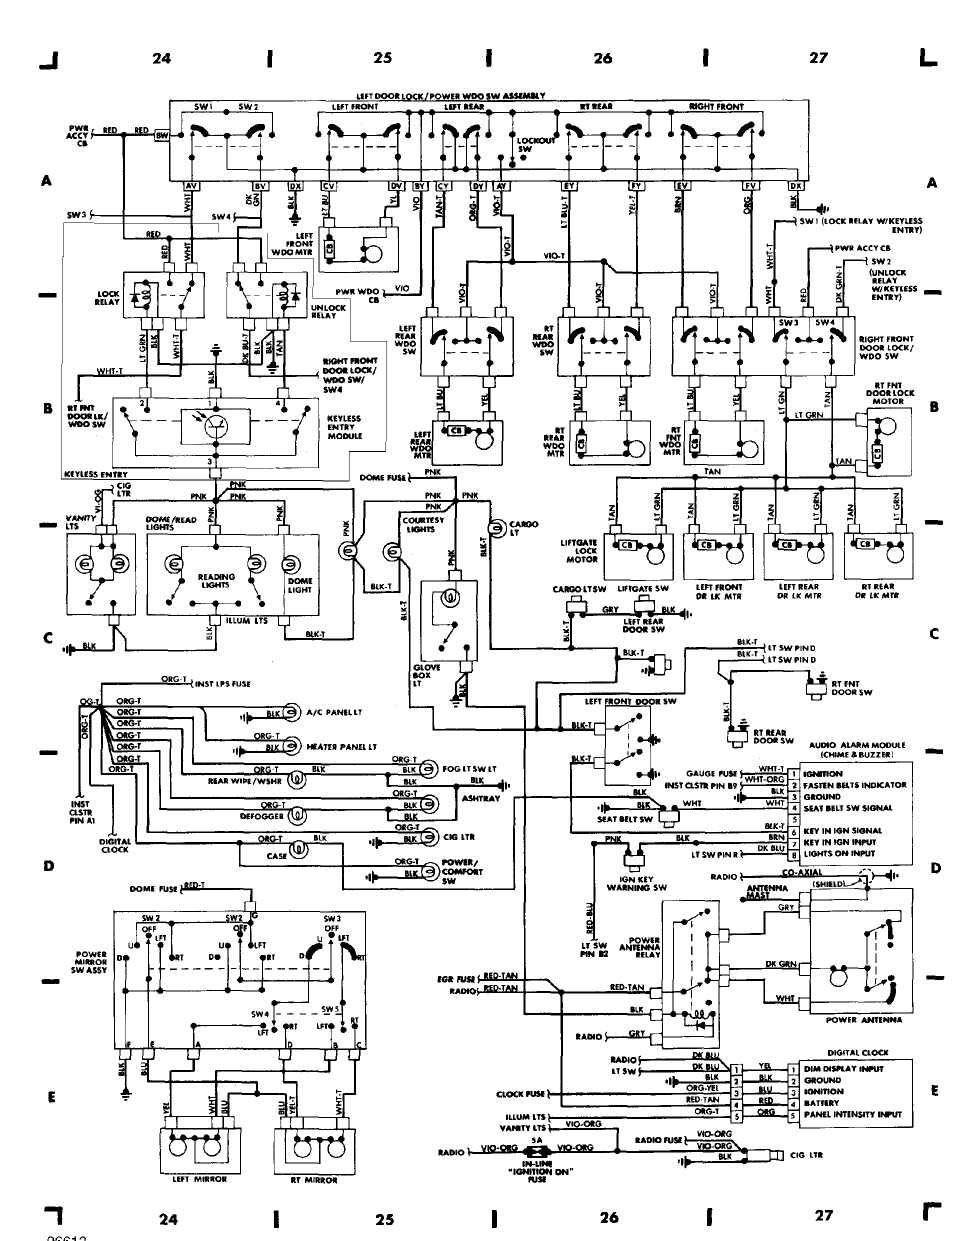 wiring_diagrams_html_61f5e0ad wiring diagrams 1984 1991 jeep cherokee (xj) jeep 1995 jeep grand cherokee wiring diagram at bakdesigns.co